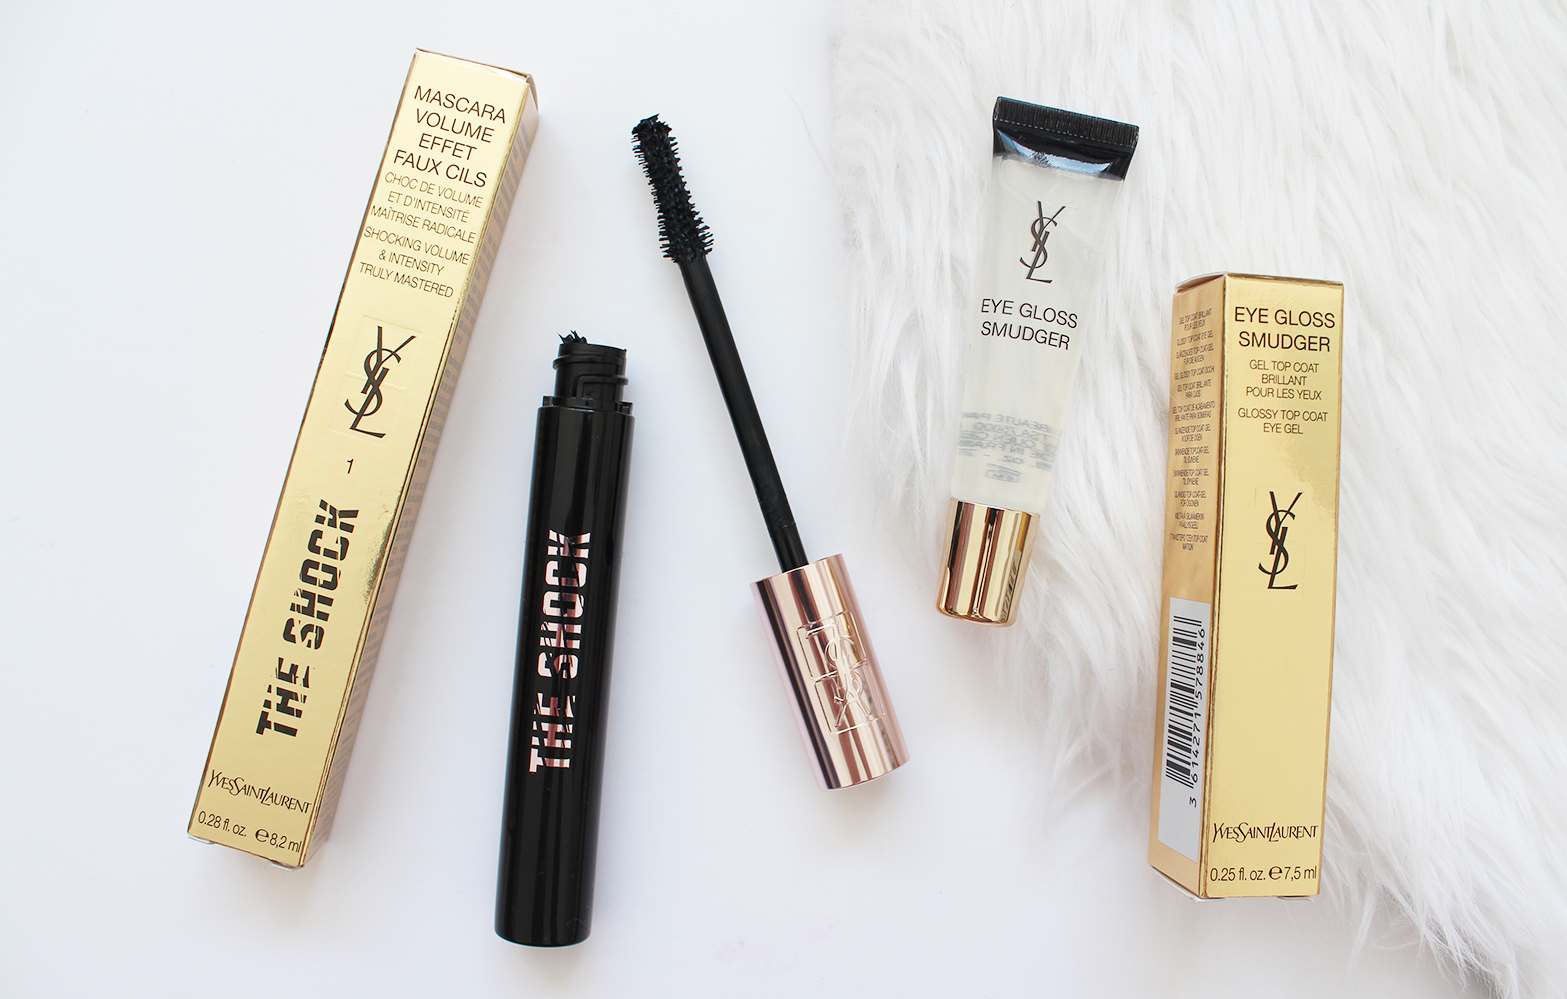 YSL | New Product Launches - Black Opium Floral, The Shock Mascara + The Street And I Face Palettes - Review + Swatches - CassandraMyee